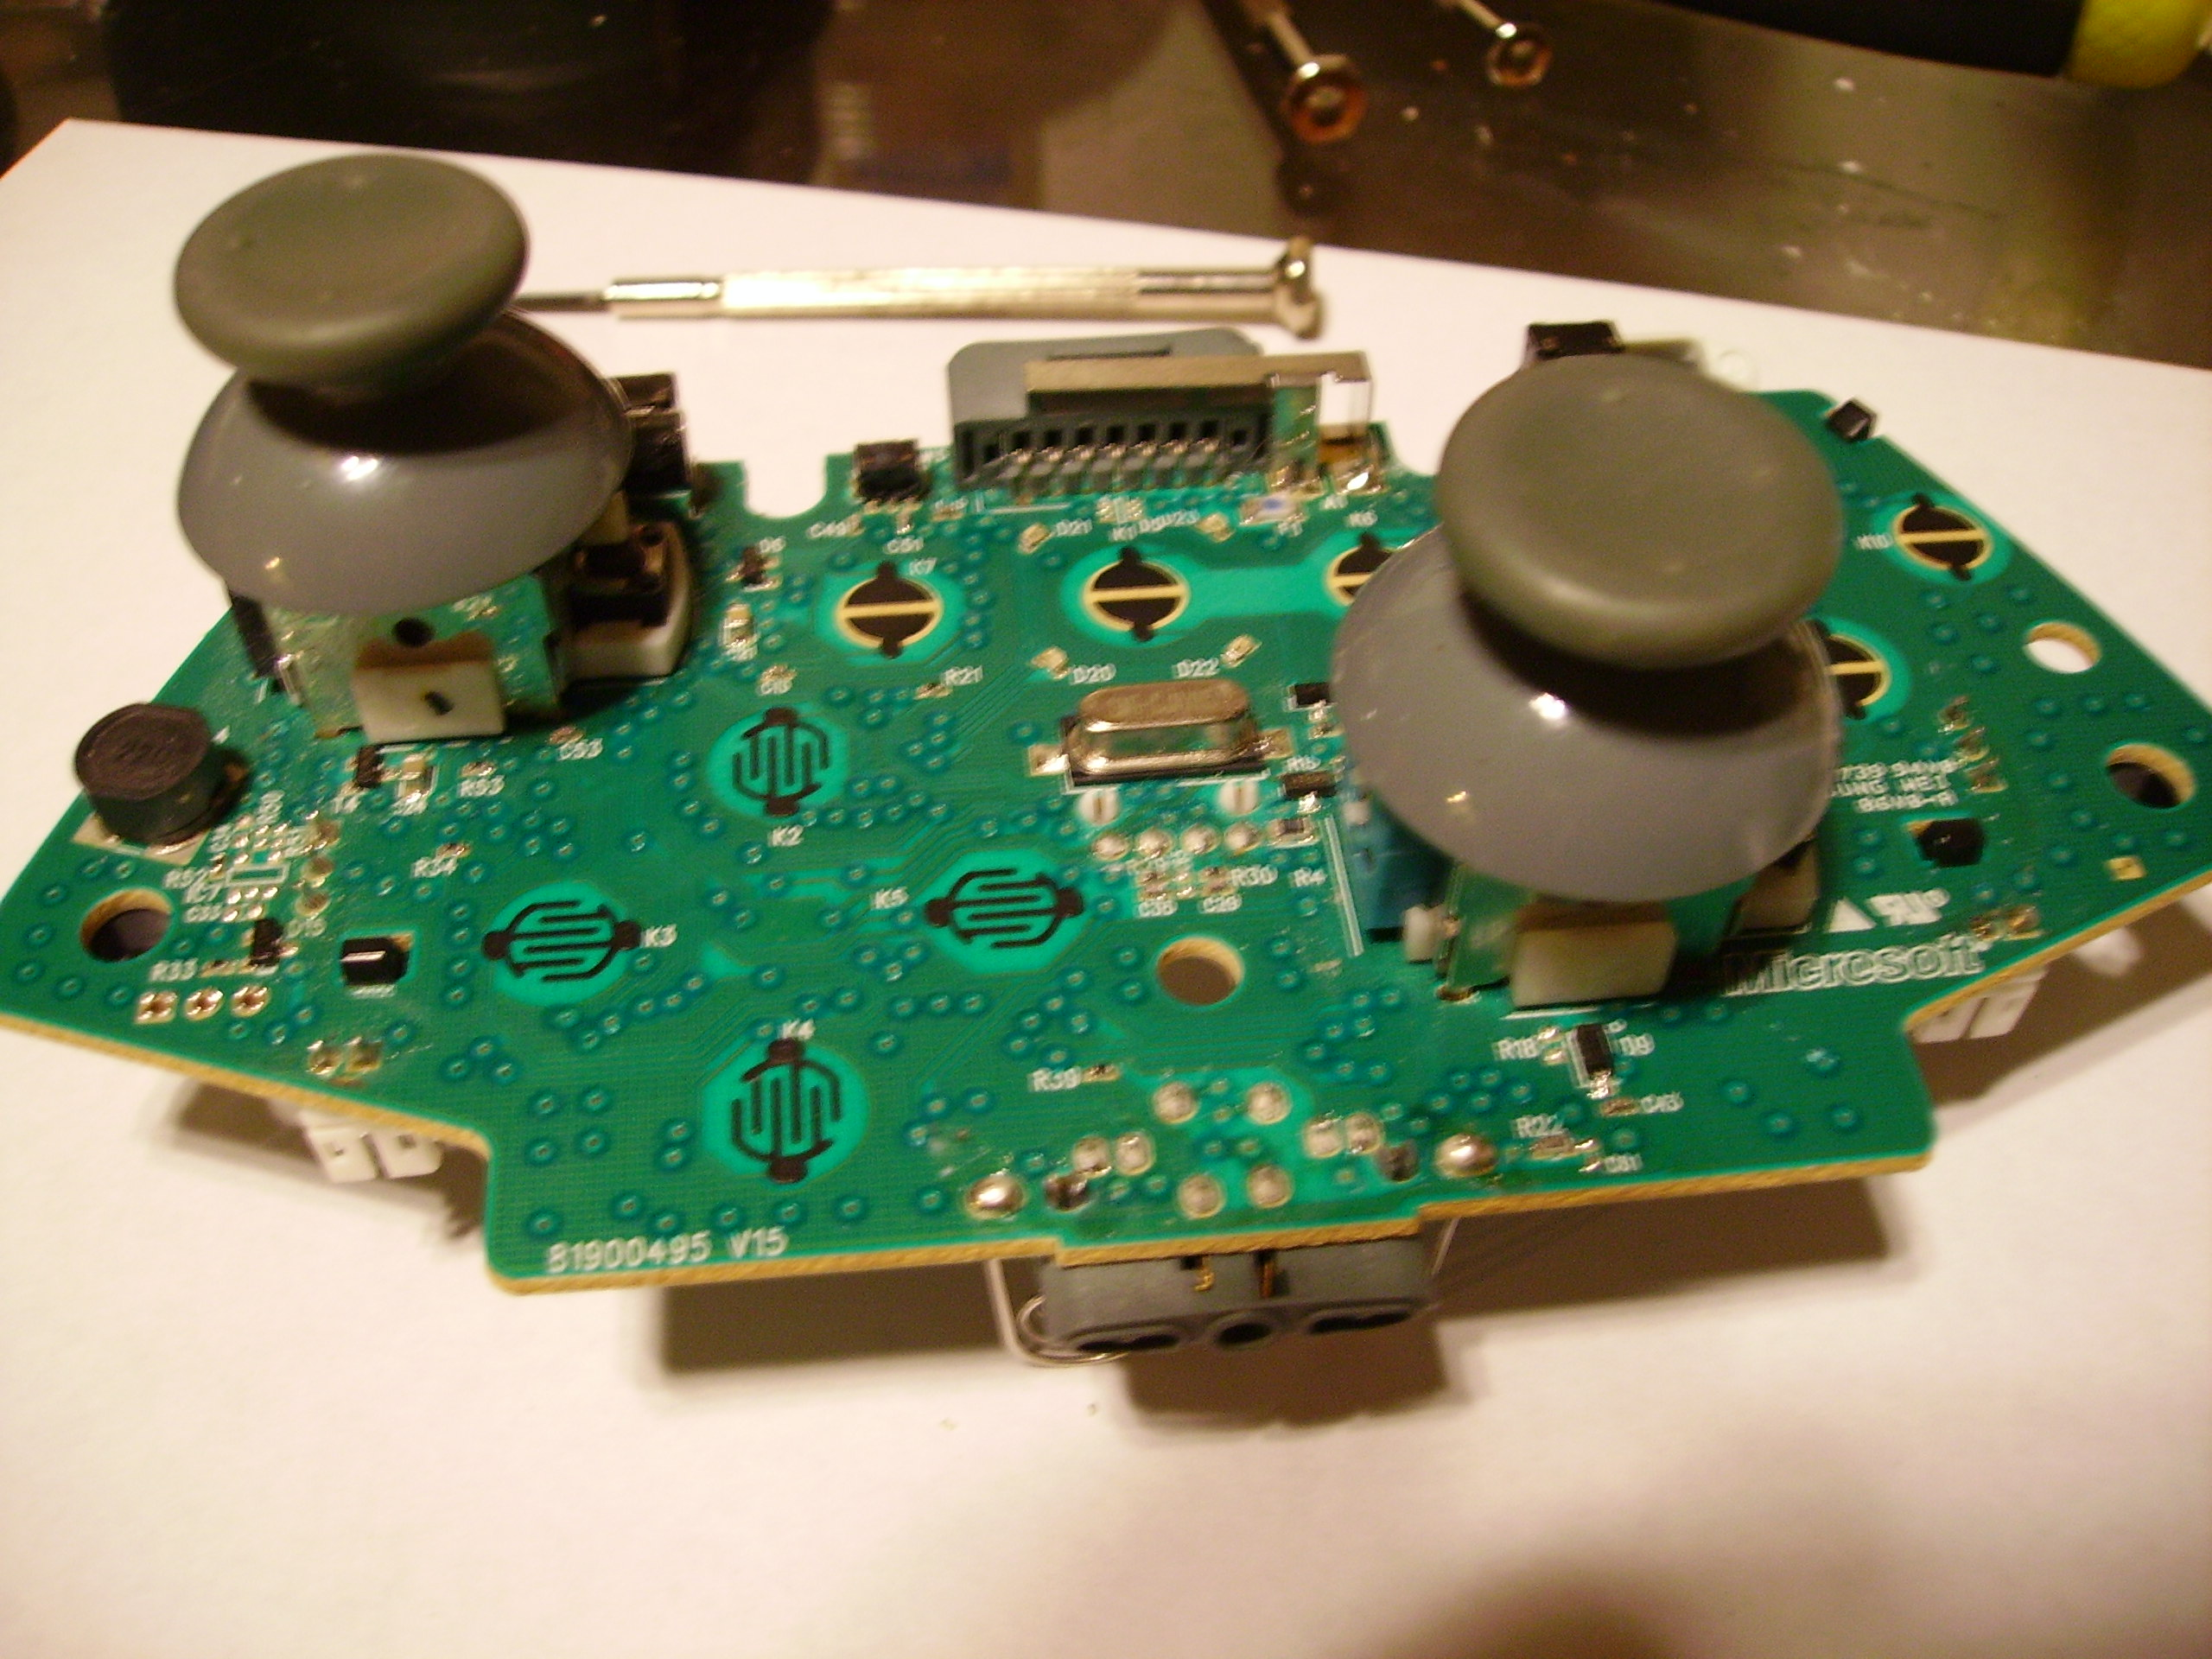 Picture of Solder the New Analog Joystick to the Board.